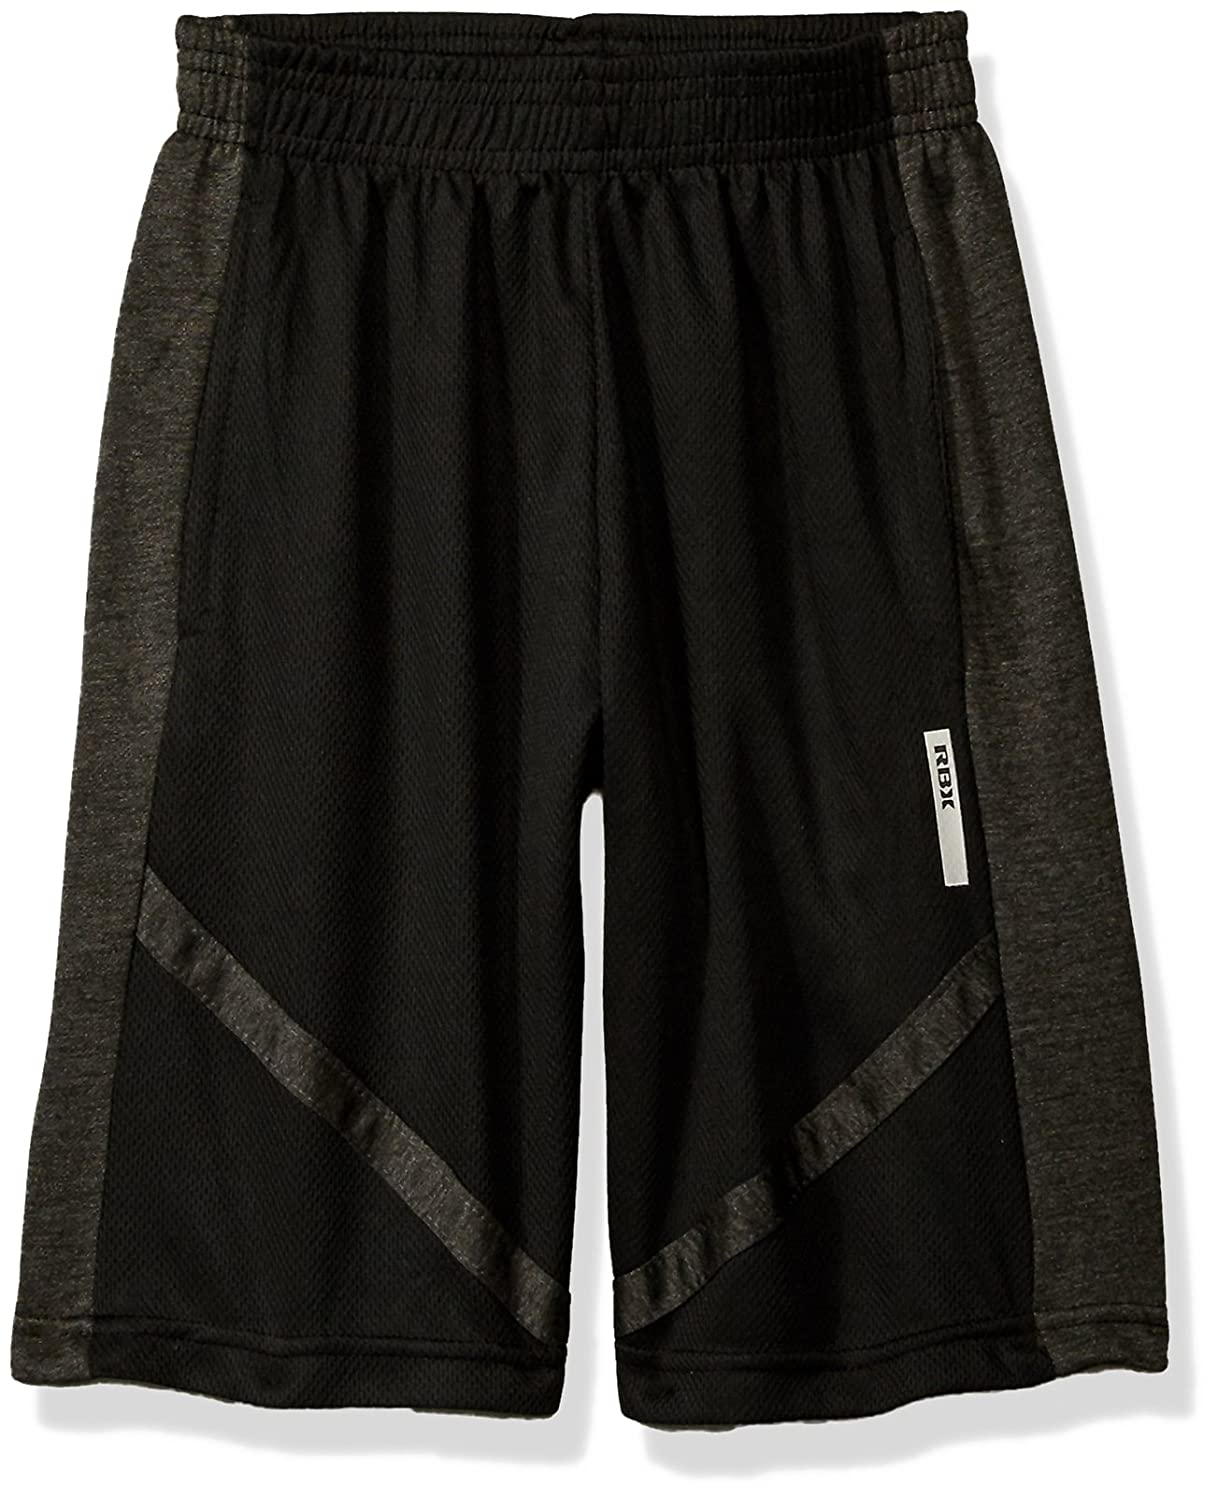 RBX SHORTS ボーイズ